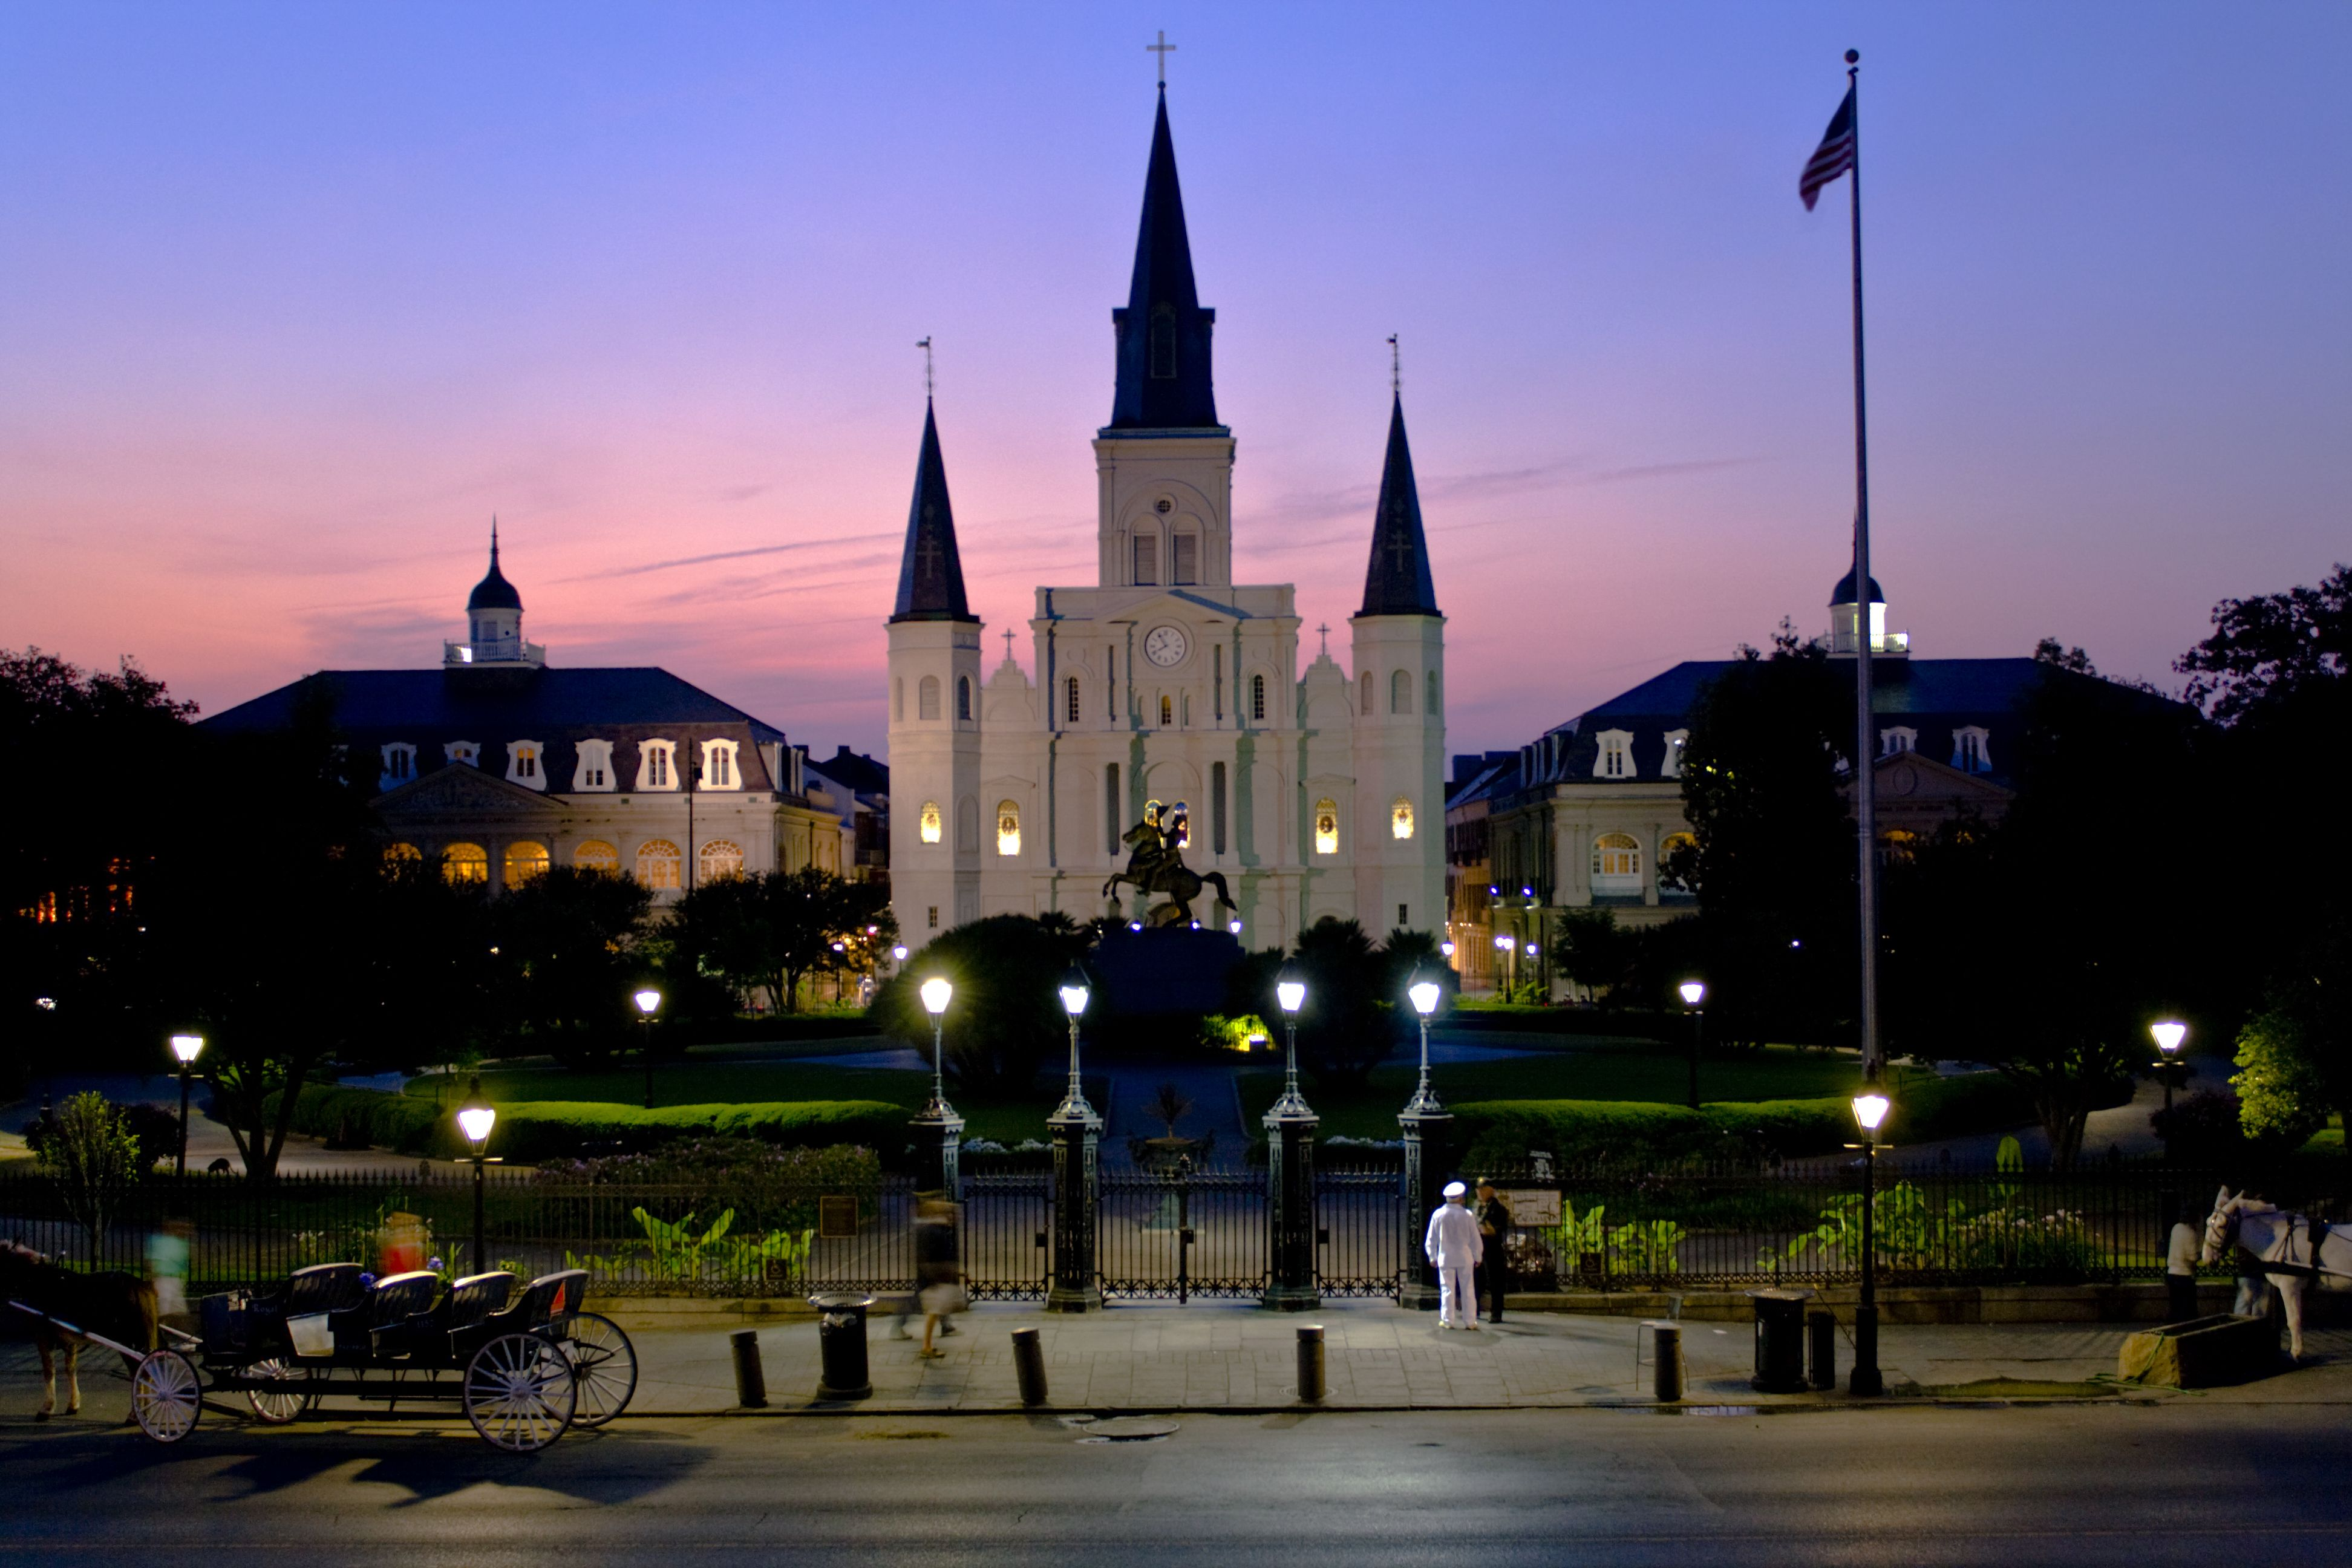 saint louis cathedral is a symbol of new orleans original image